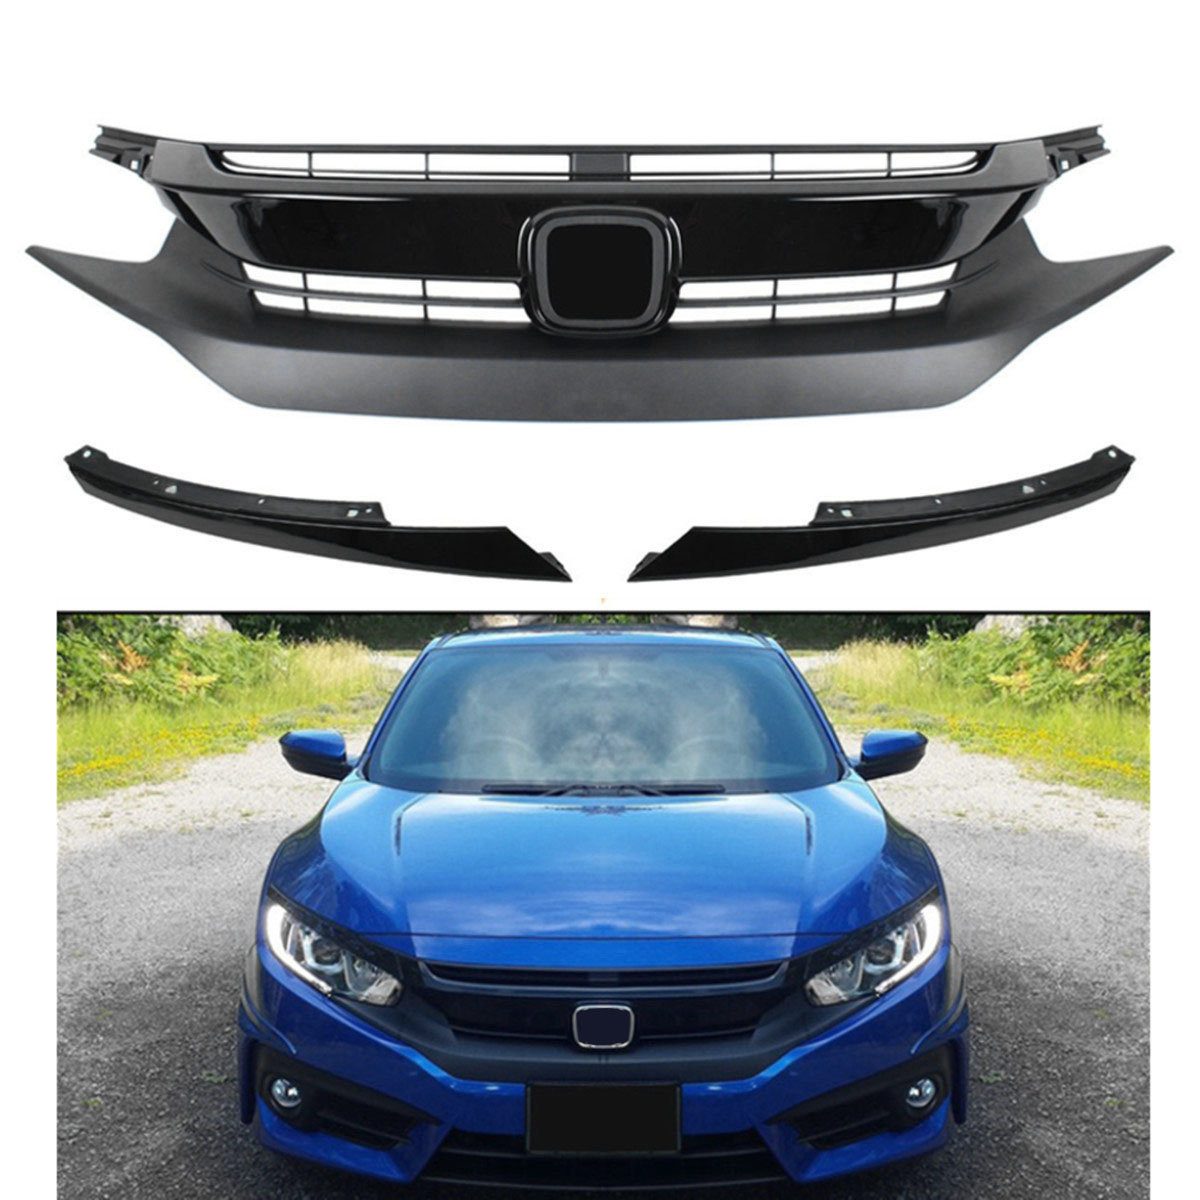 1Set Car Front Hood Grille Grill&Headlight Eye Lid for Civic 10th 2016-2017 Gen Plastic  ...